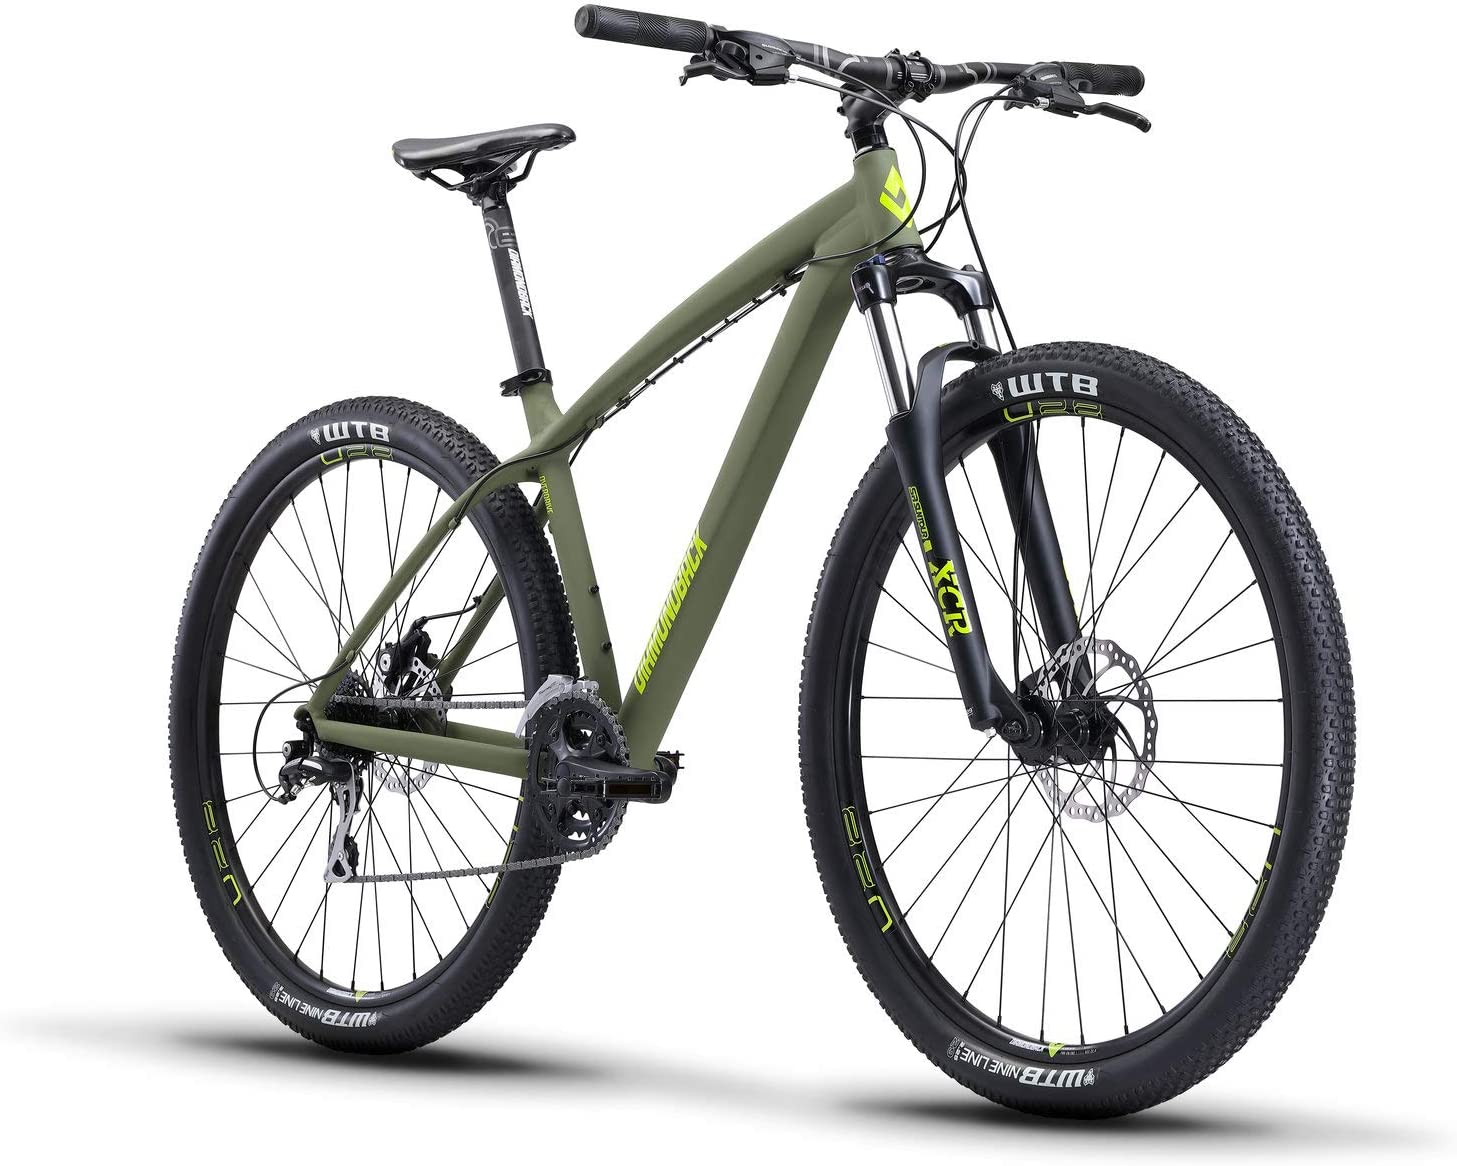 Diamondback 2019 Overdrive 29 1 - Bicicleta de montaña, color ...